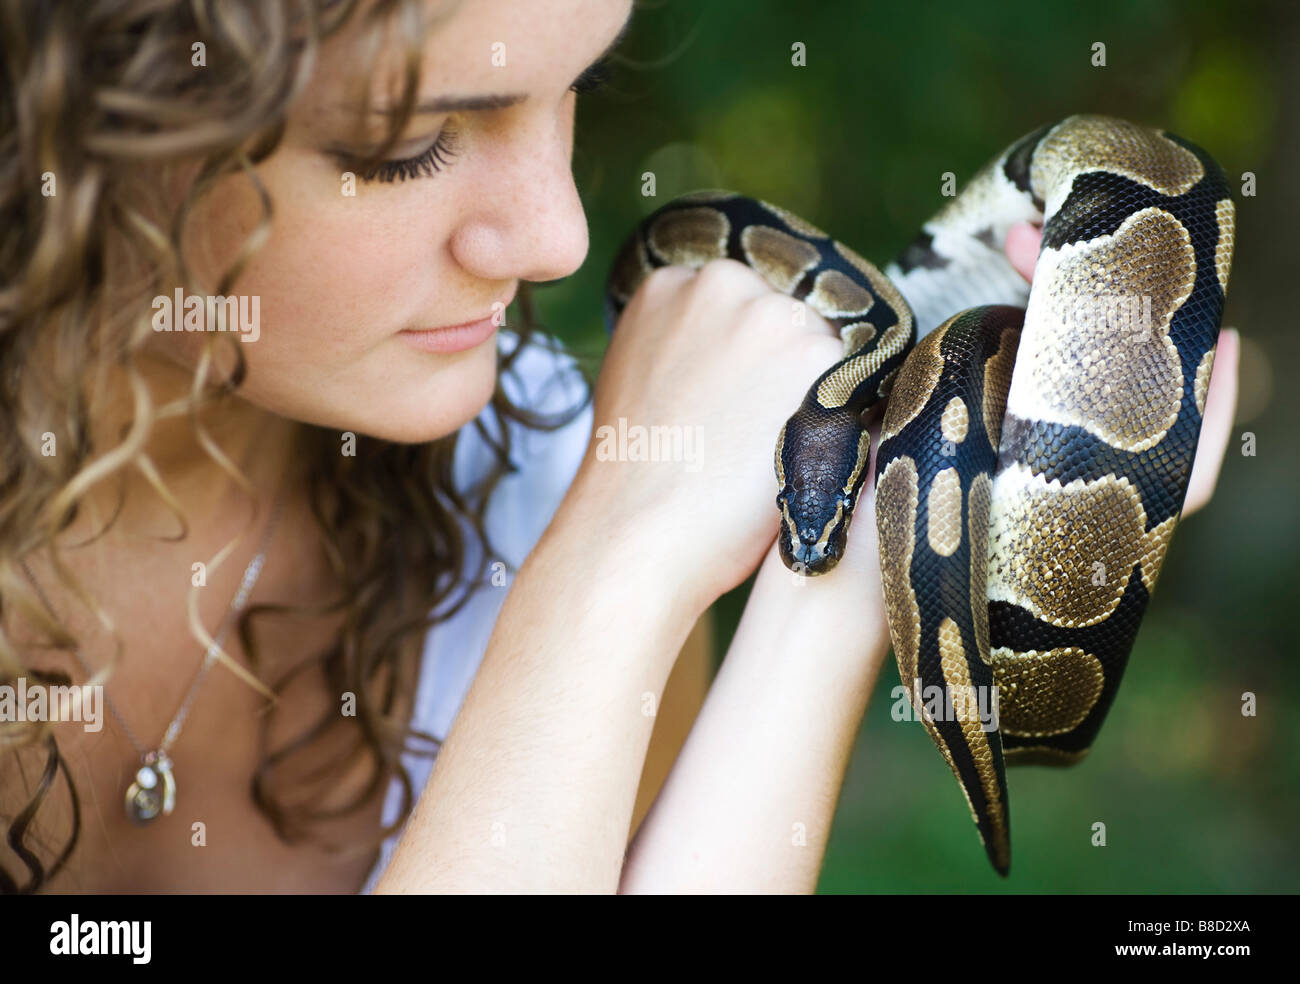 Woman with a snake - Stock Image